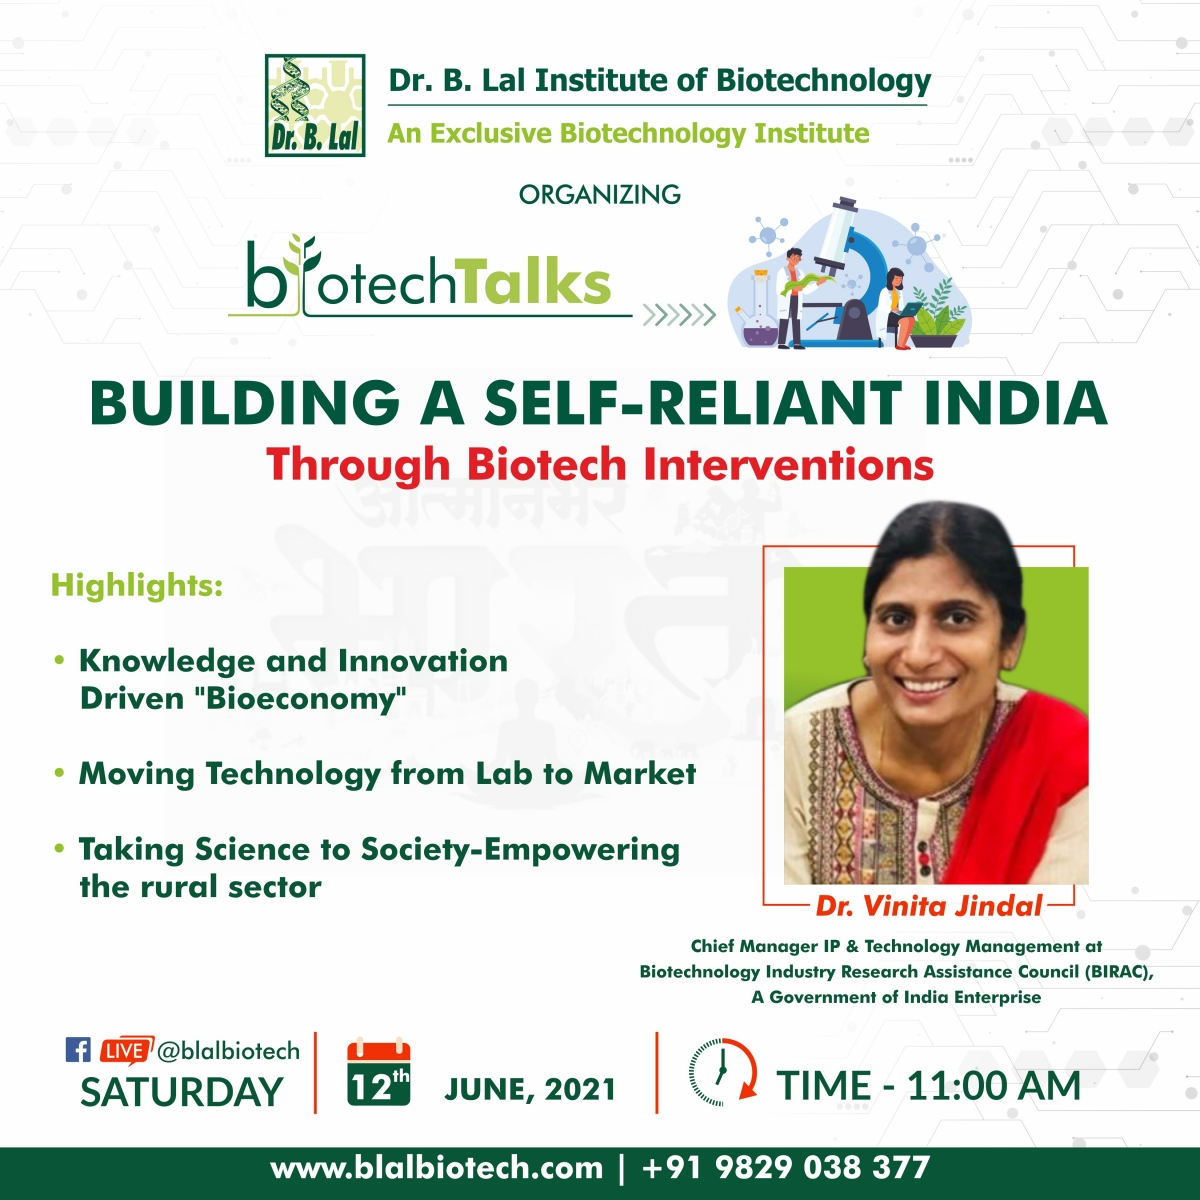 BUILDING A SELF-RELIANT INDIA THROUGH BIOTECH INTERVENTIONS